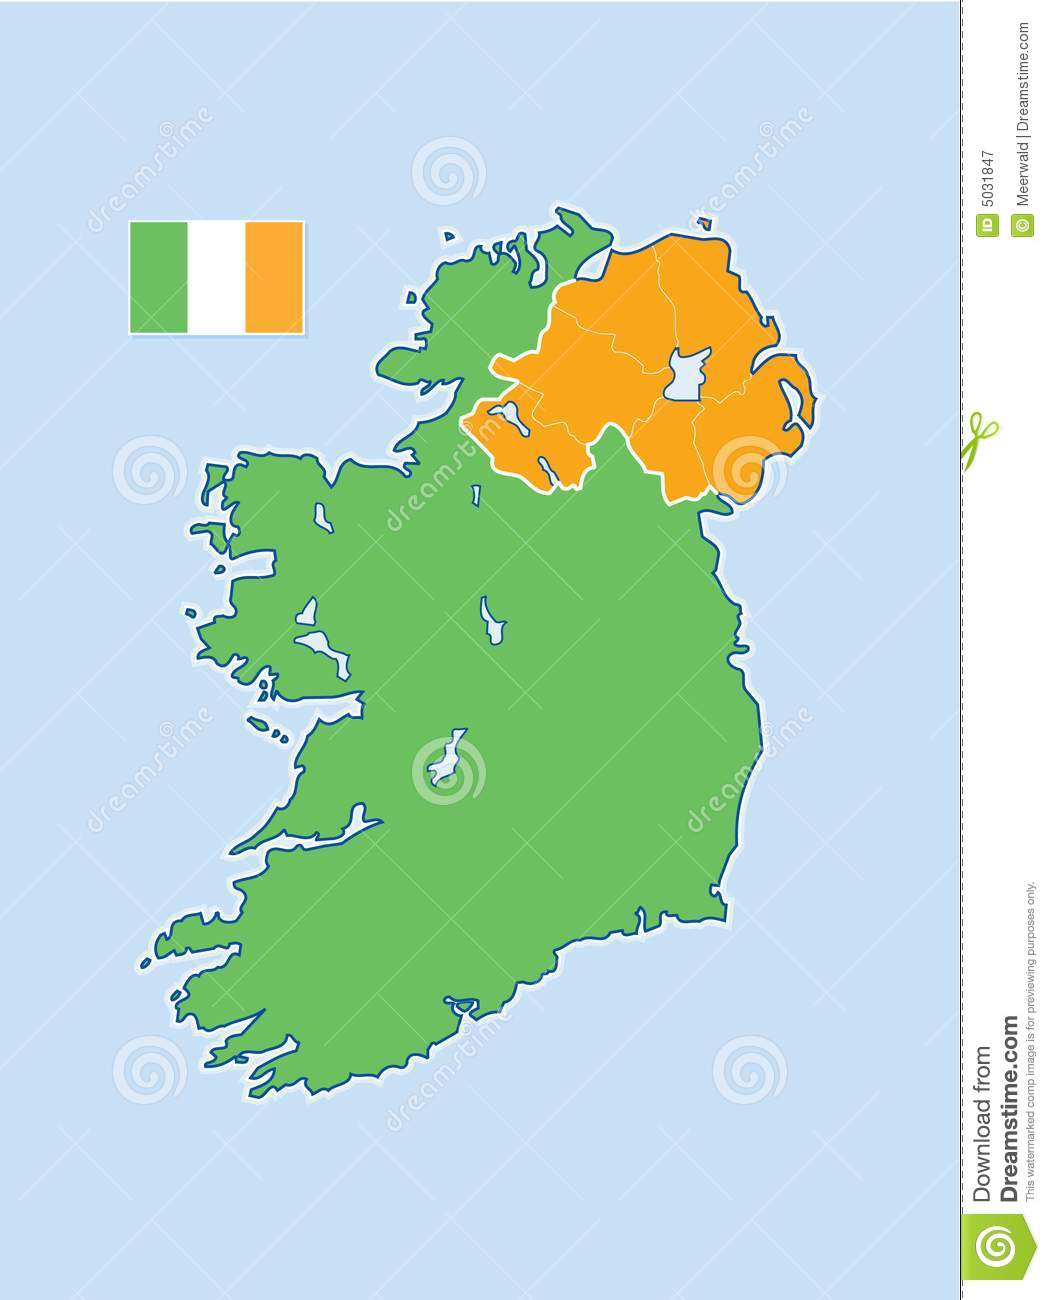 Map Of North And South Ireland.Ireland Map Stock Illustration Illustration Of Member 5031847